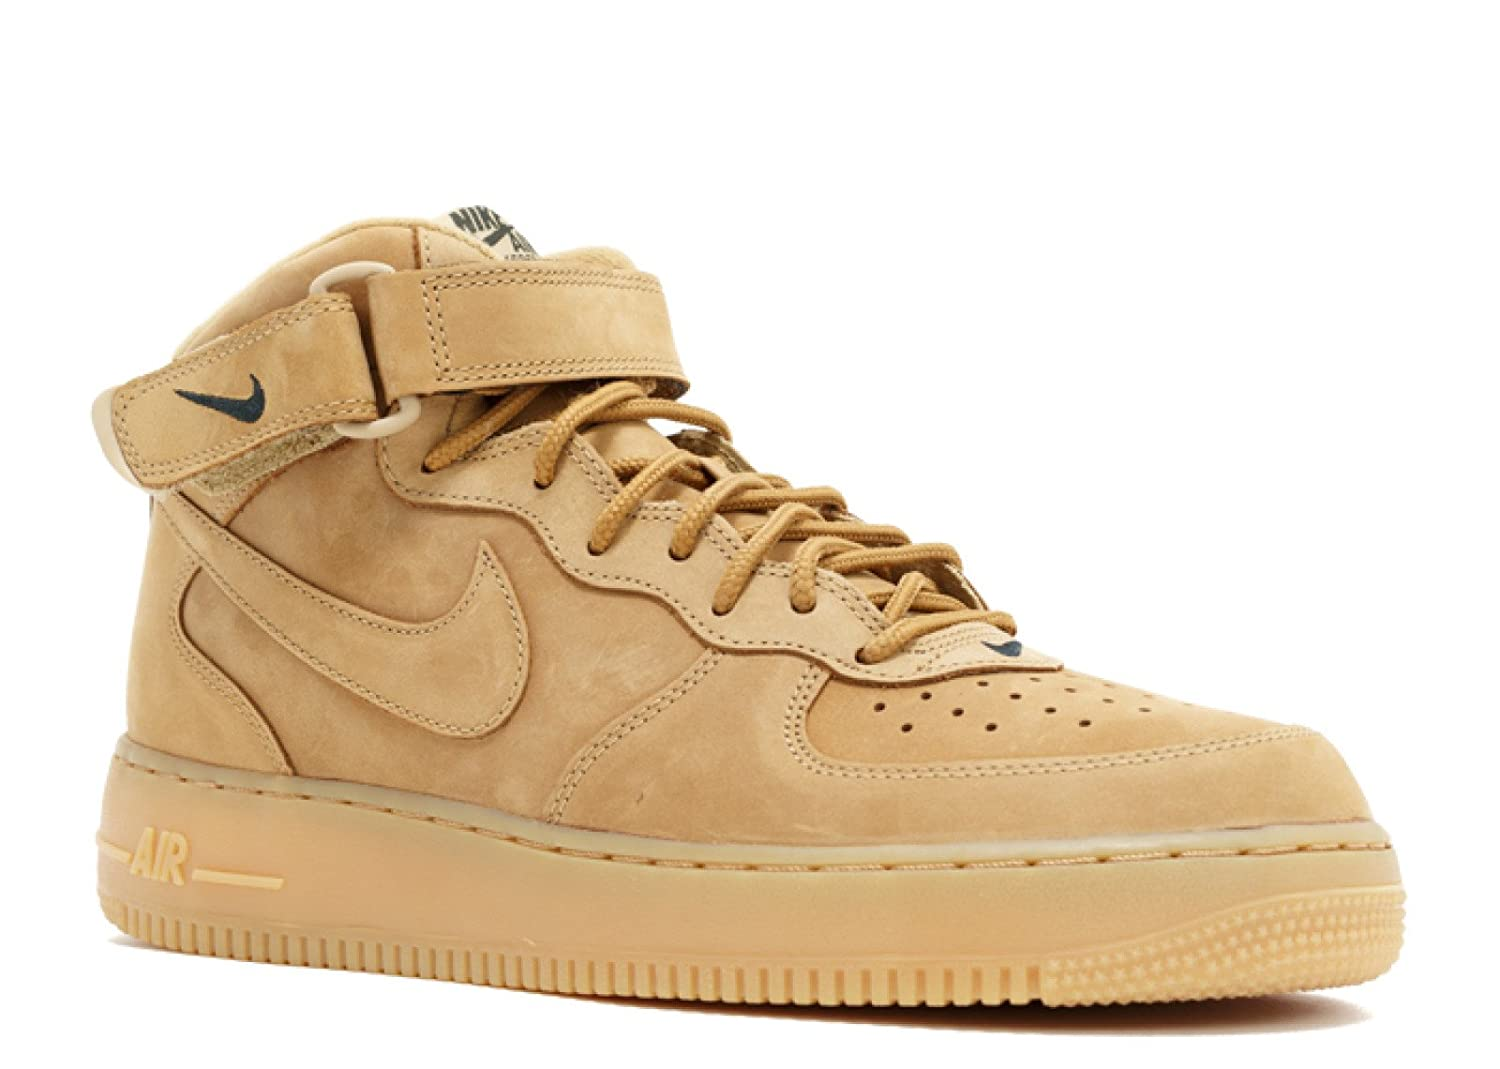 braun (Flax   Flax-outdoor Grün) Nike Herren Air Force 1 Mid & 039;07 PRM Qs Basketballschuhe